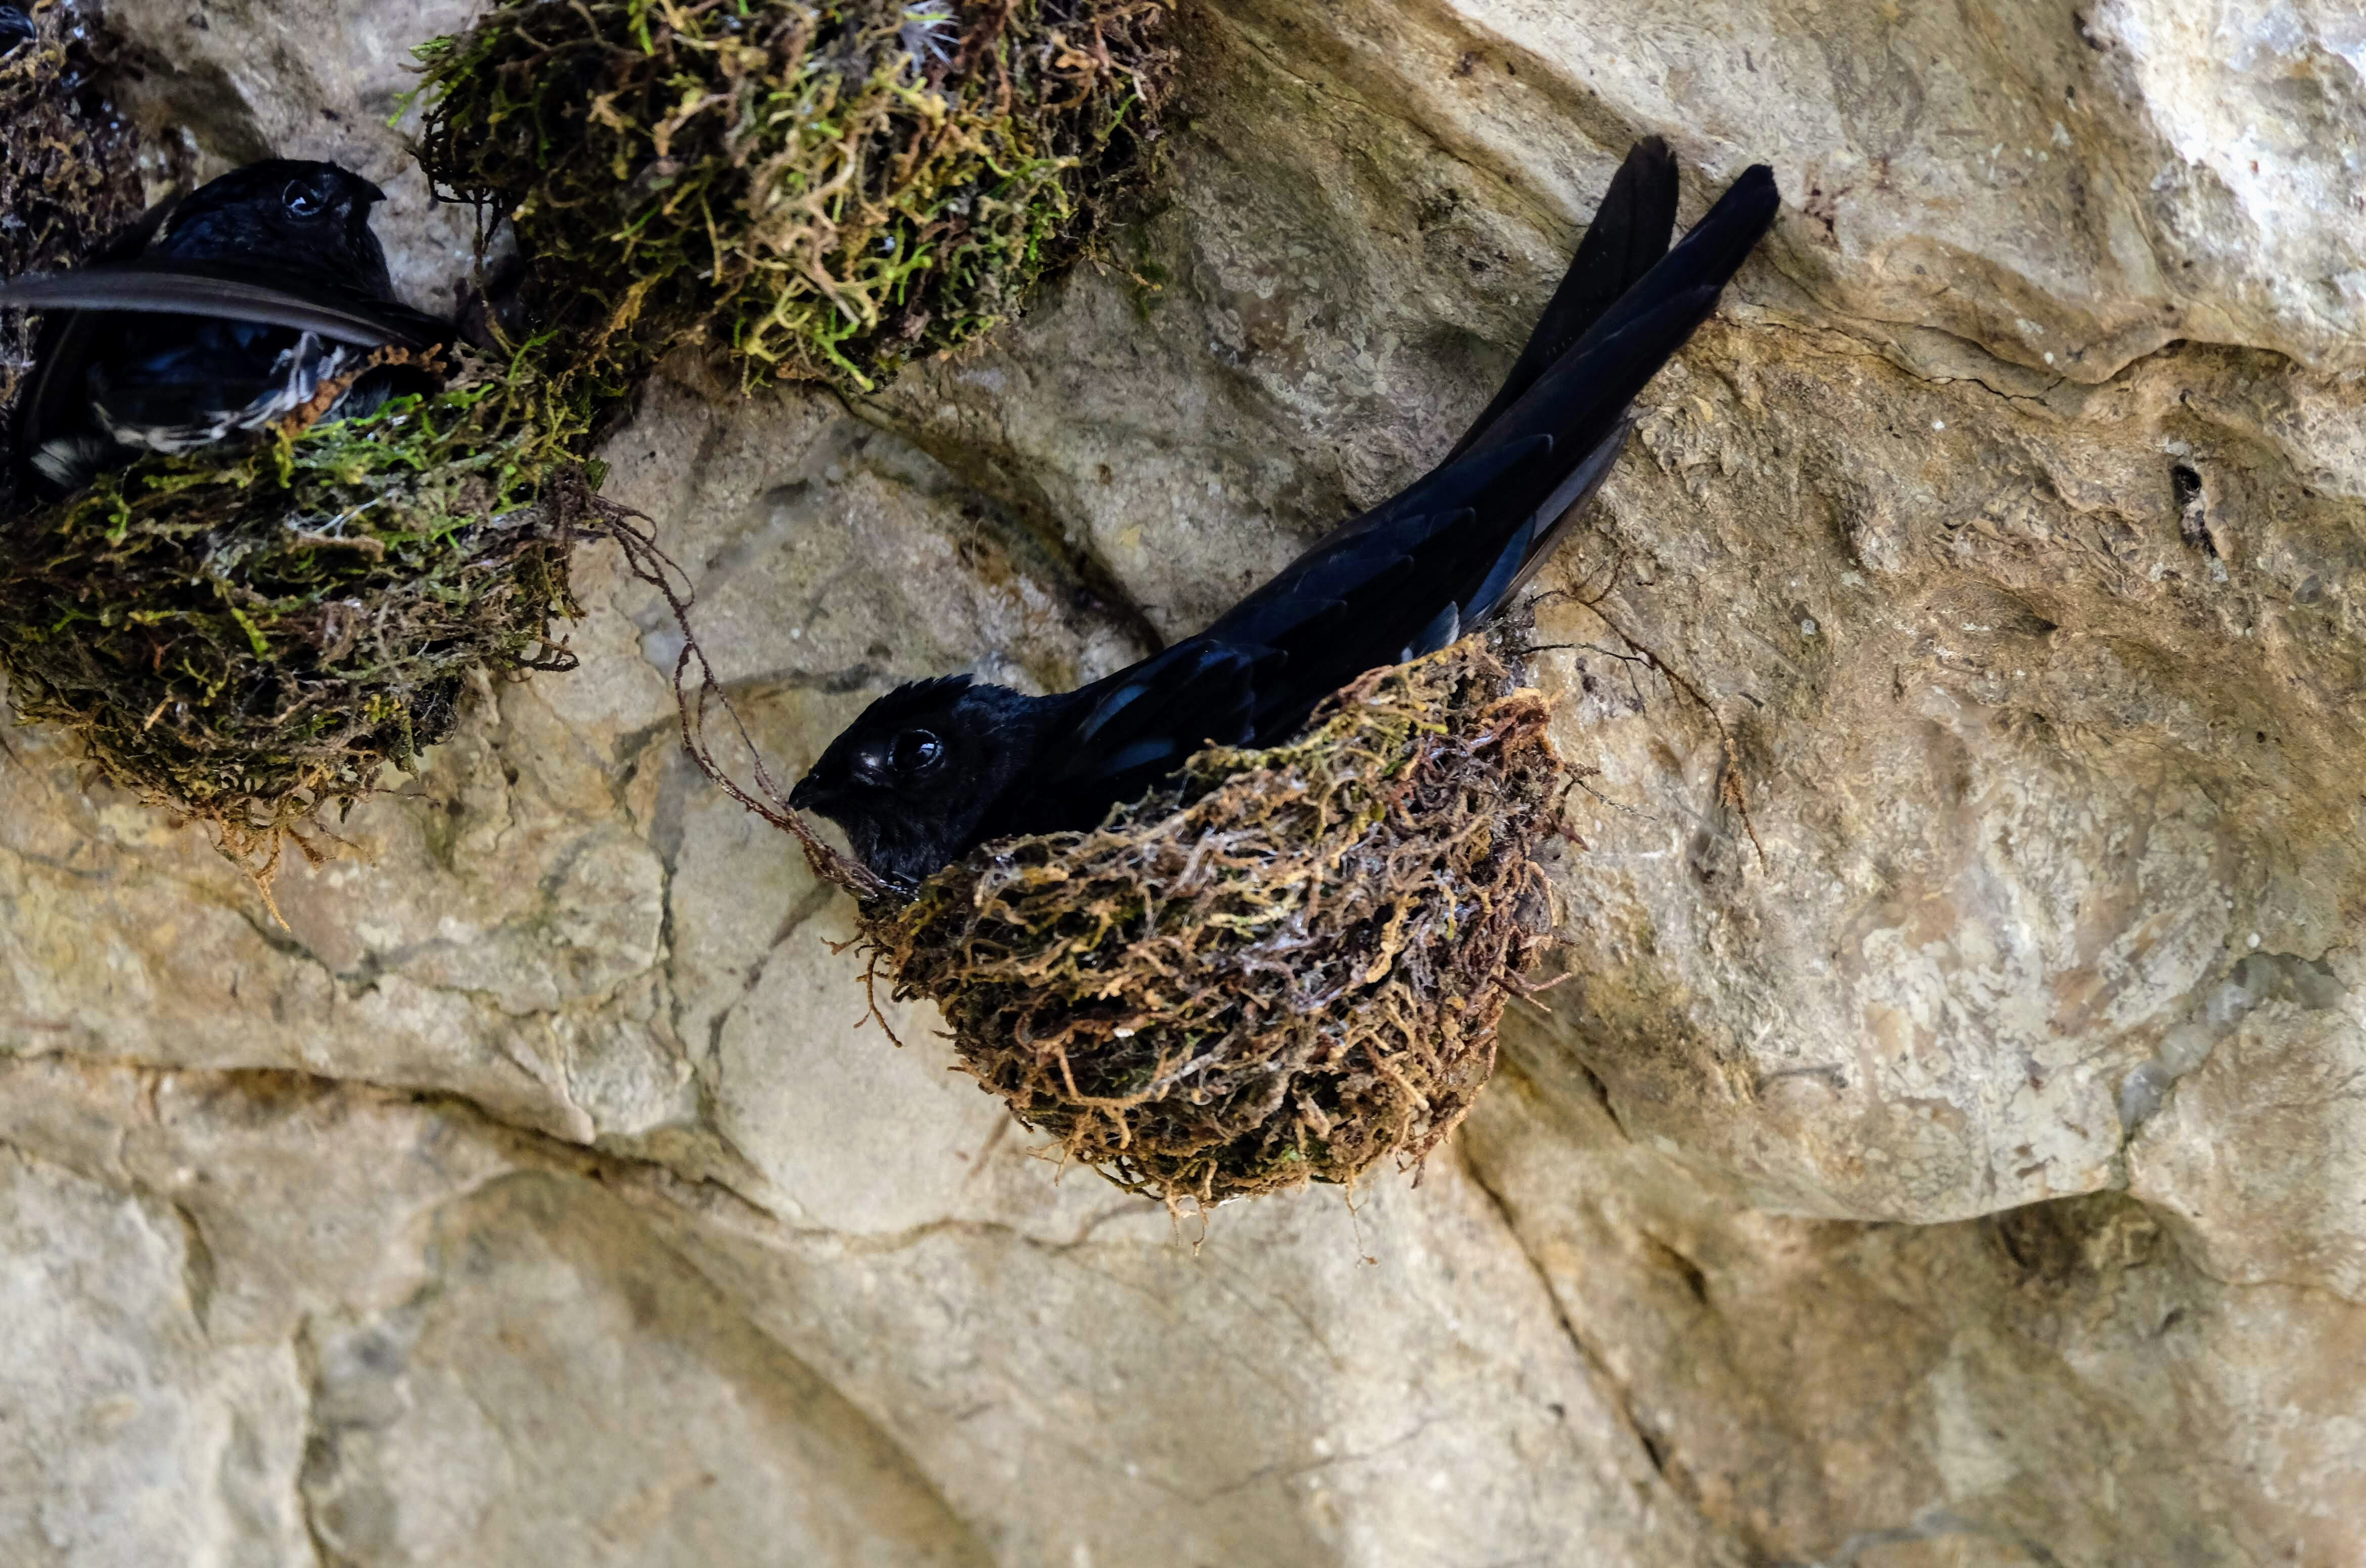 Glossy swiftlet in a nest, Kinabatangan River, Borneo